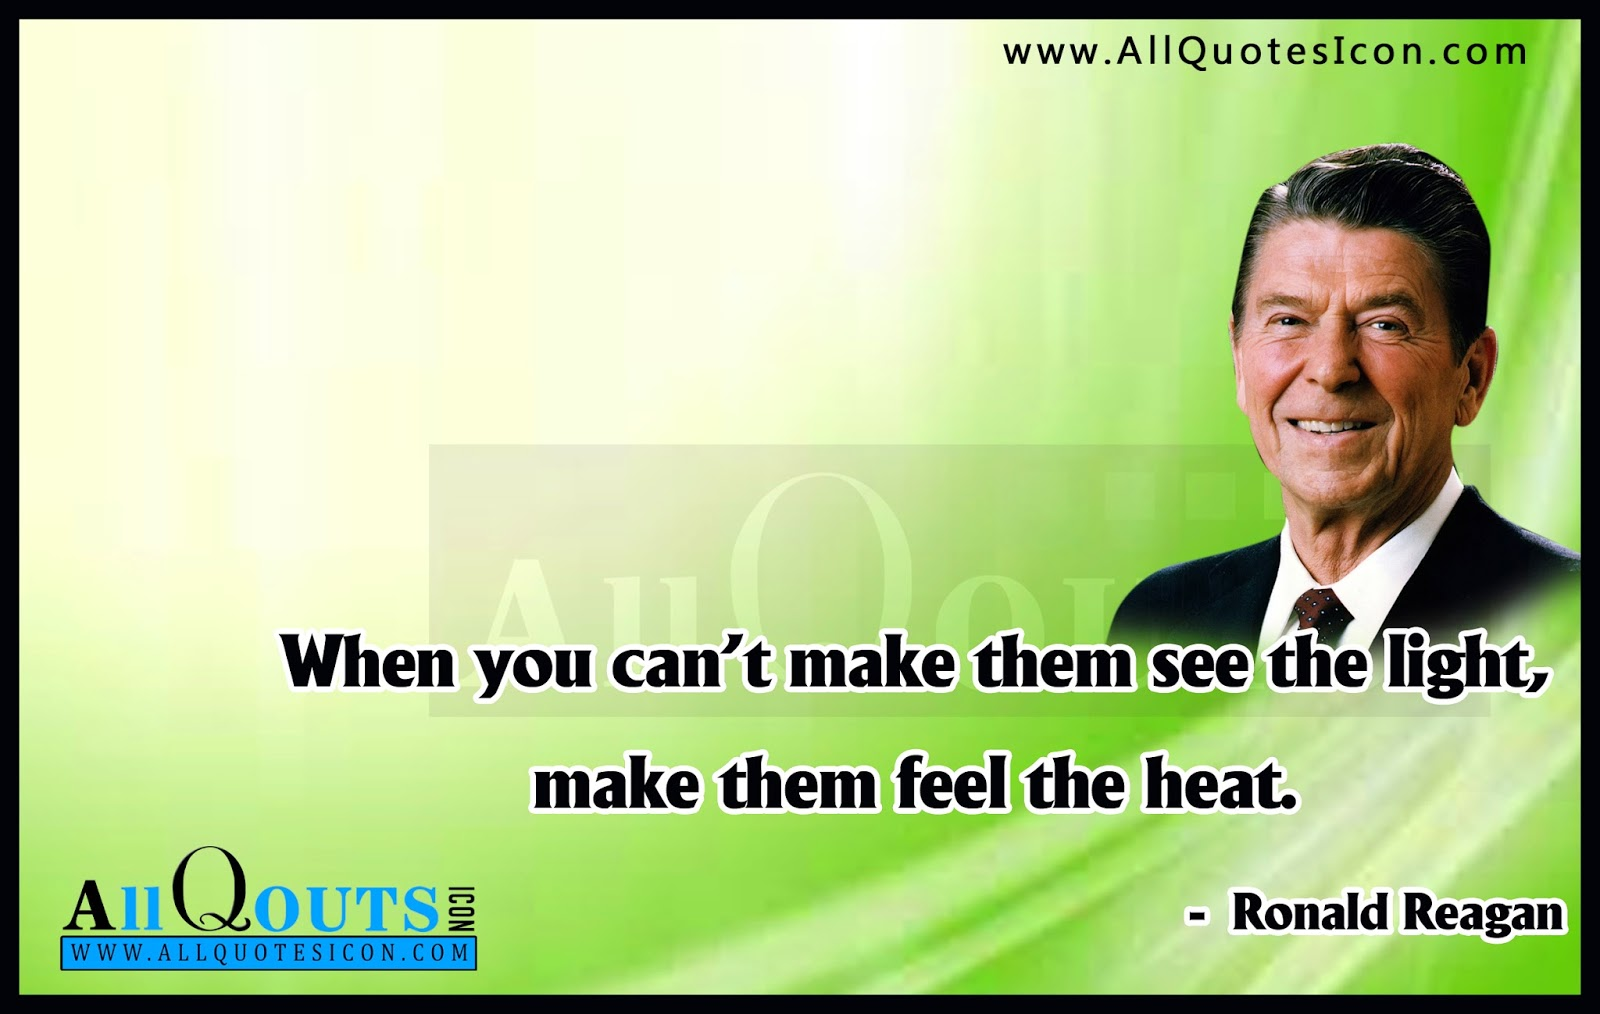 The Heat Quotes English Motivation Quotes Of Ronald Reagan  Www.allquotesicon